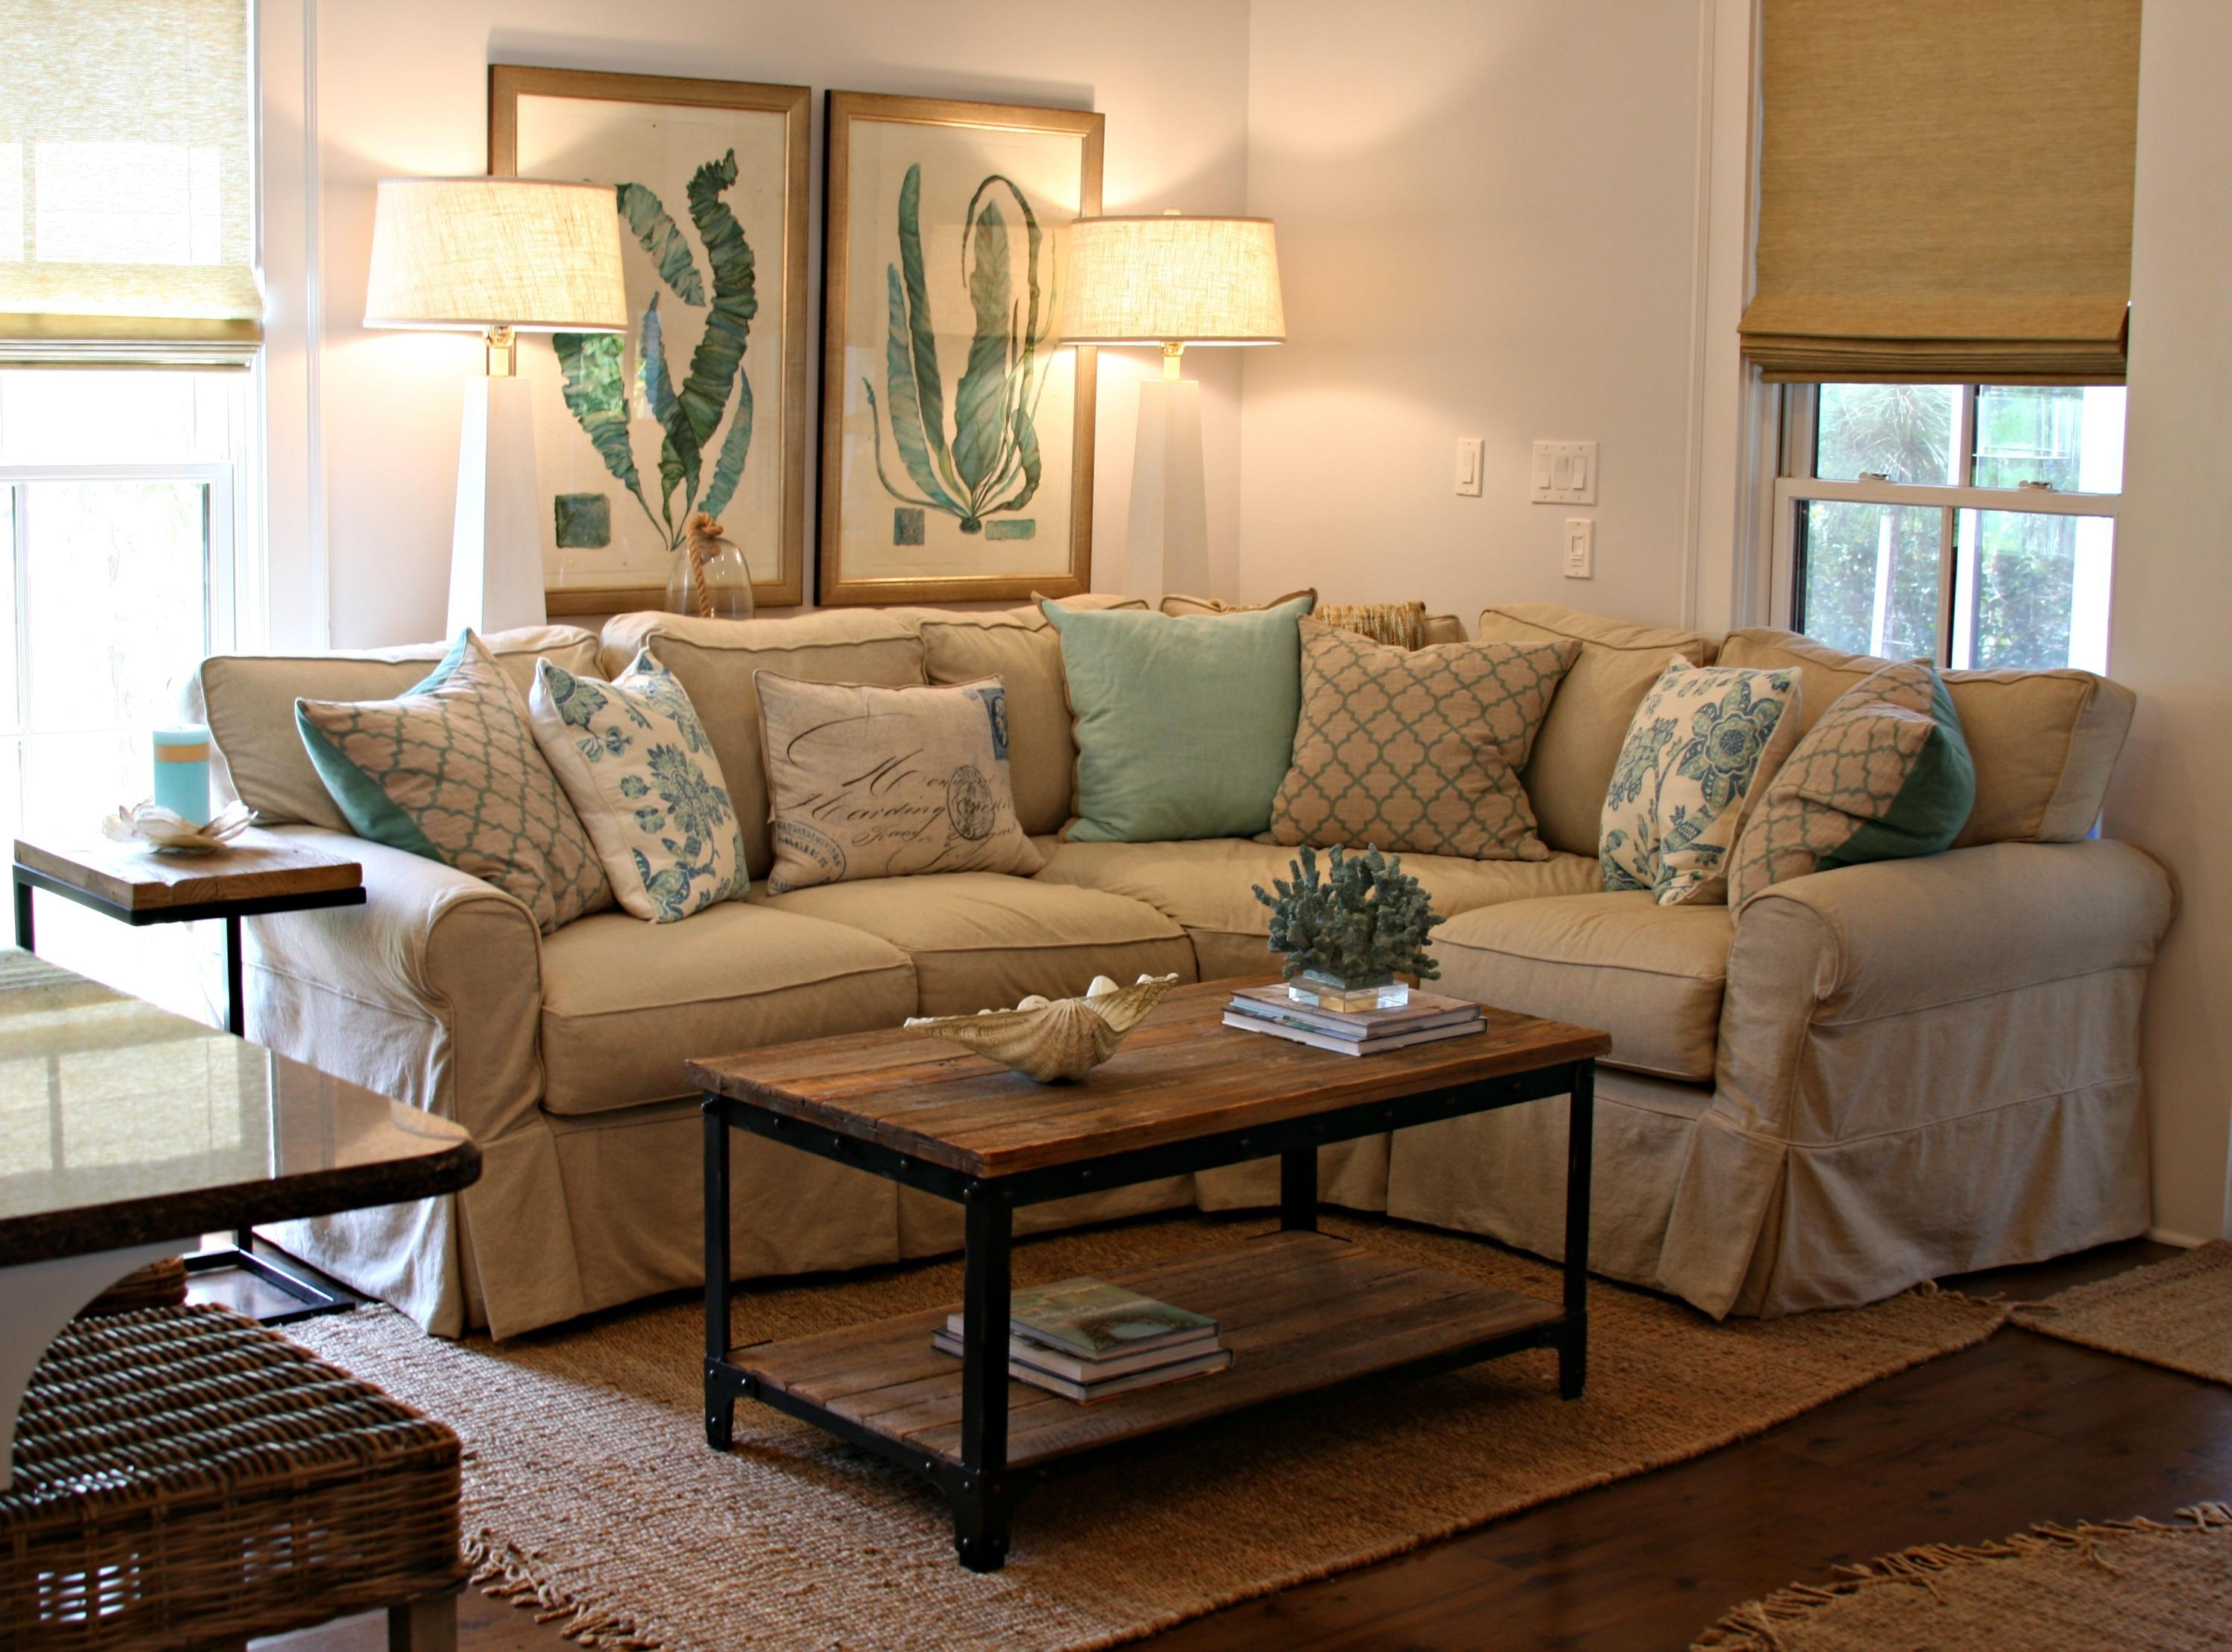 Country Sofas And Chairs | Tehranmix Decoration Within Country Cottage Sofas And Chairs (View 4 of 20)